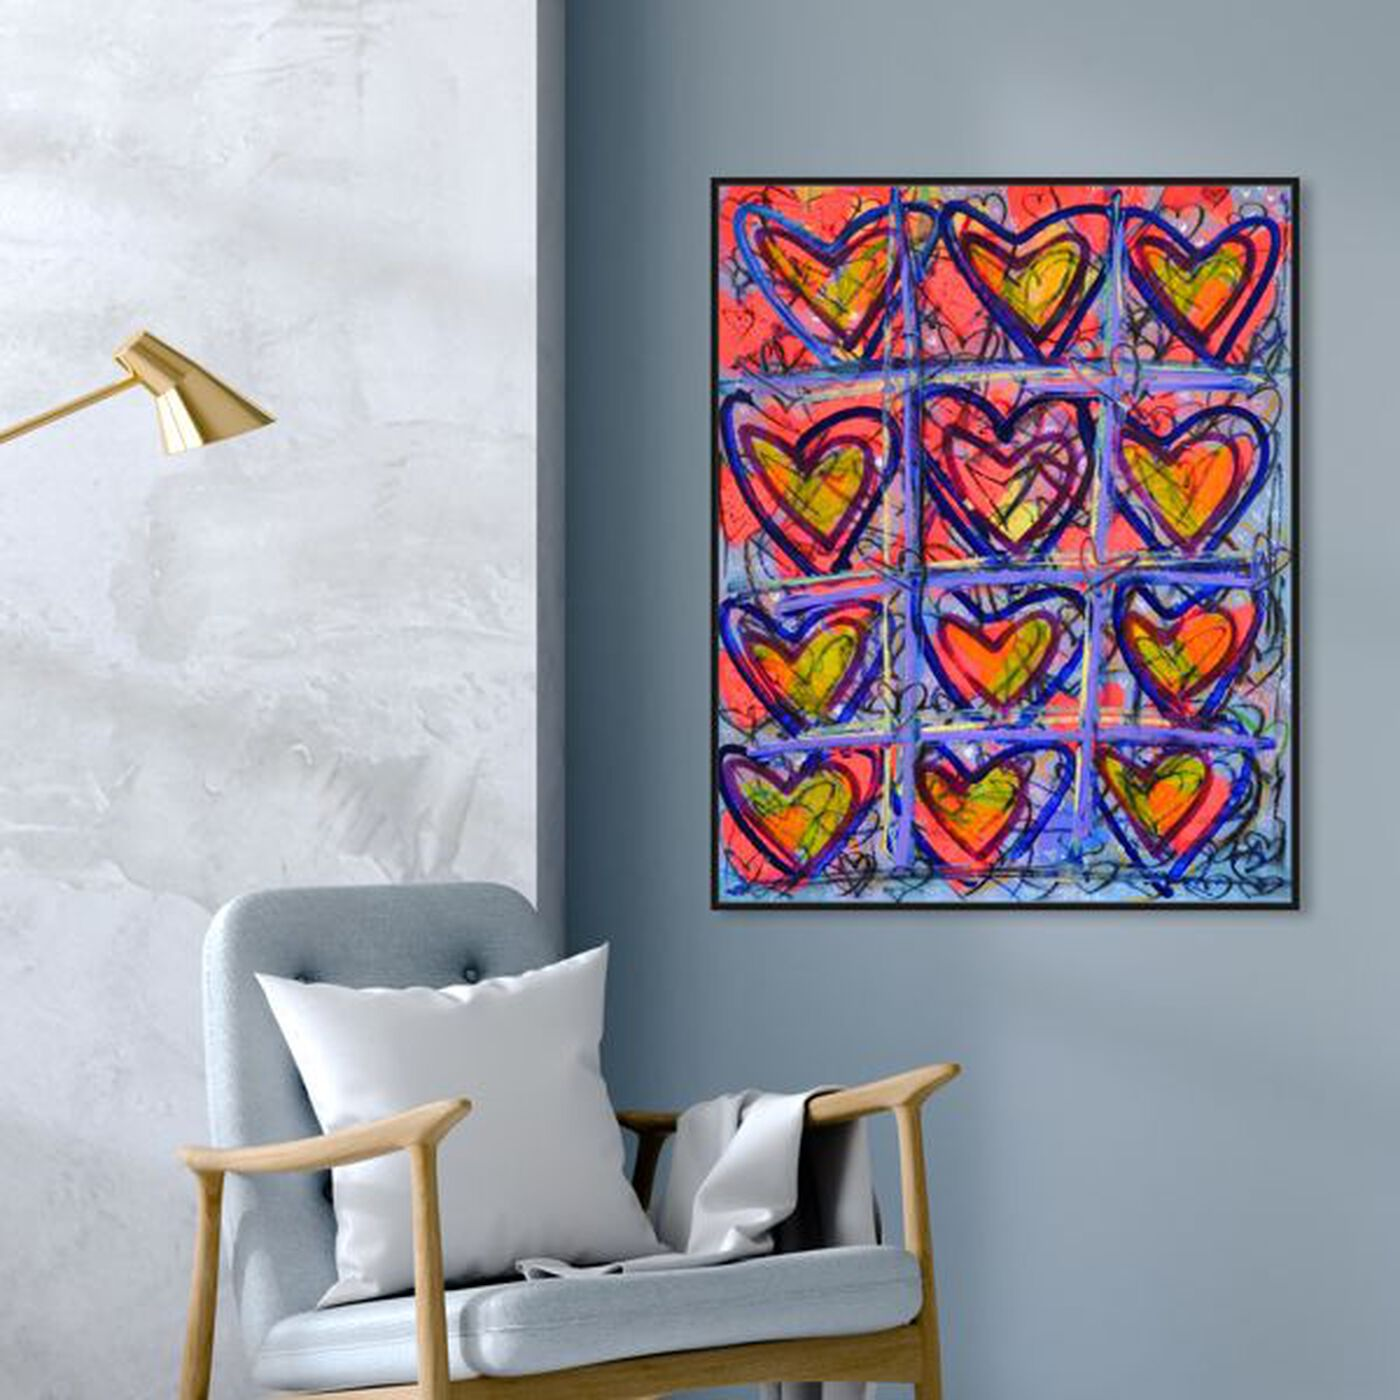 Hanging view of Doze by Tiago Magro featuring fashion and glam and hearts art.